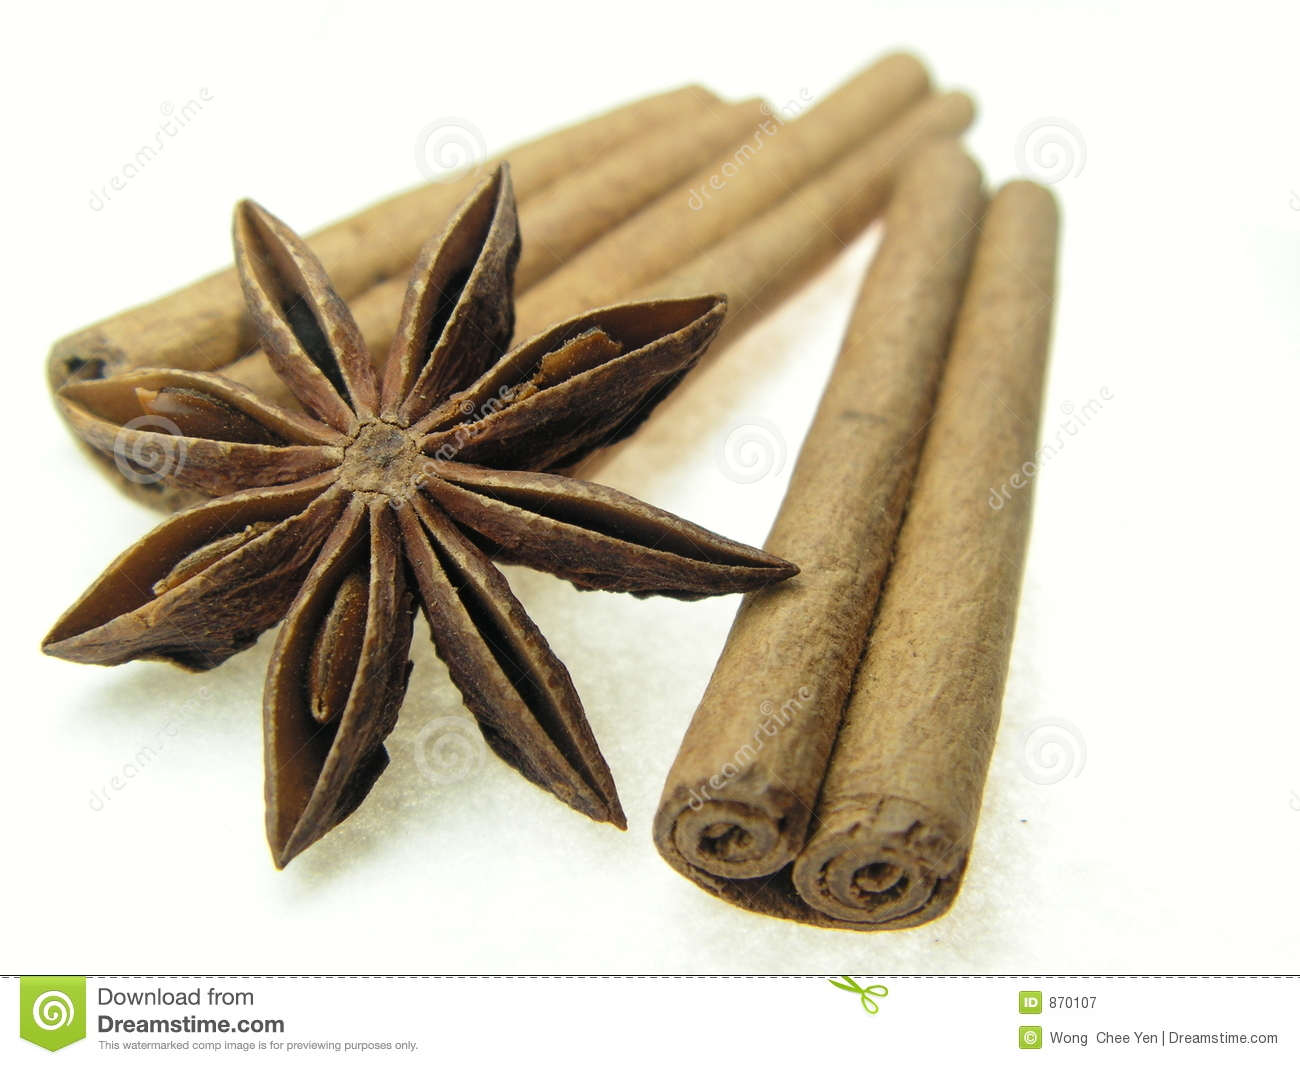 Pods Com Prices >> Star spice cinnamon stock image. Image of culinary, badian ...